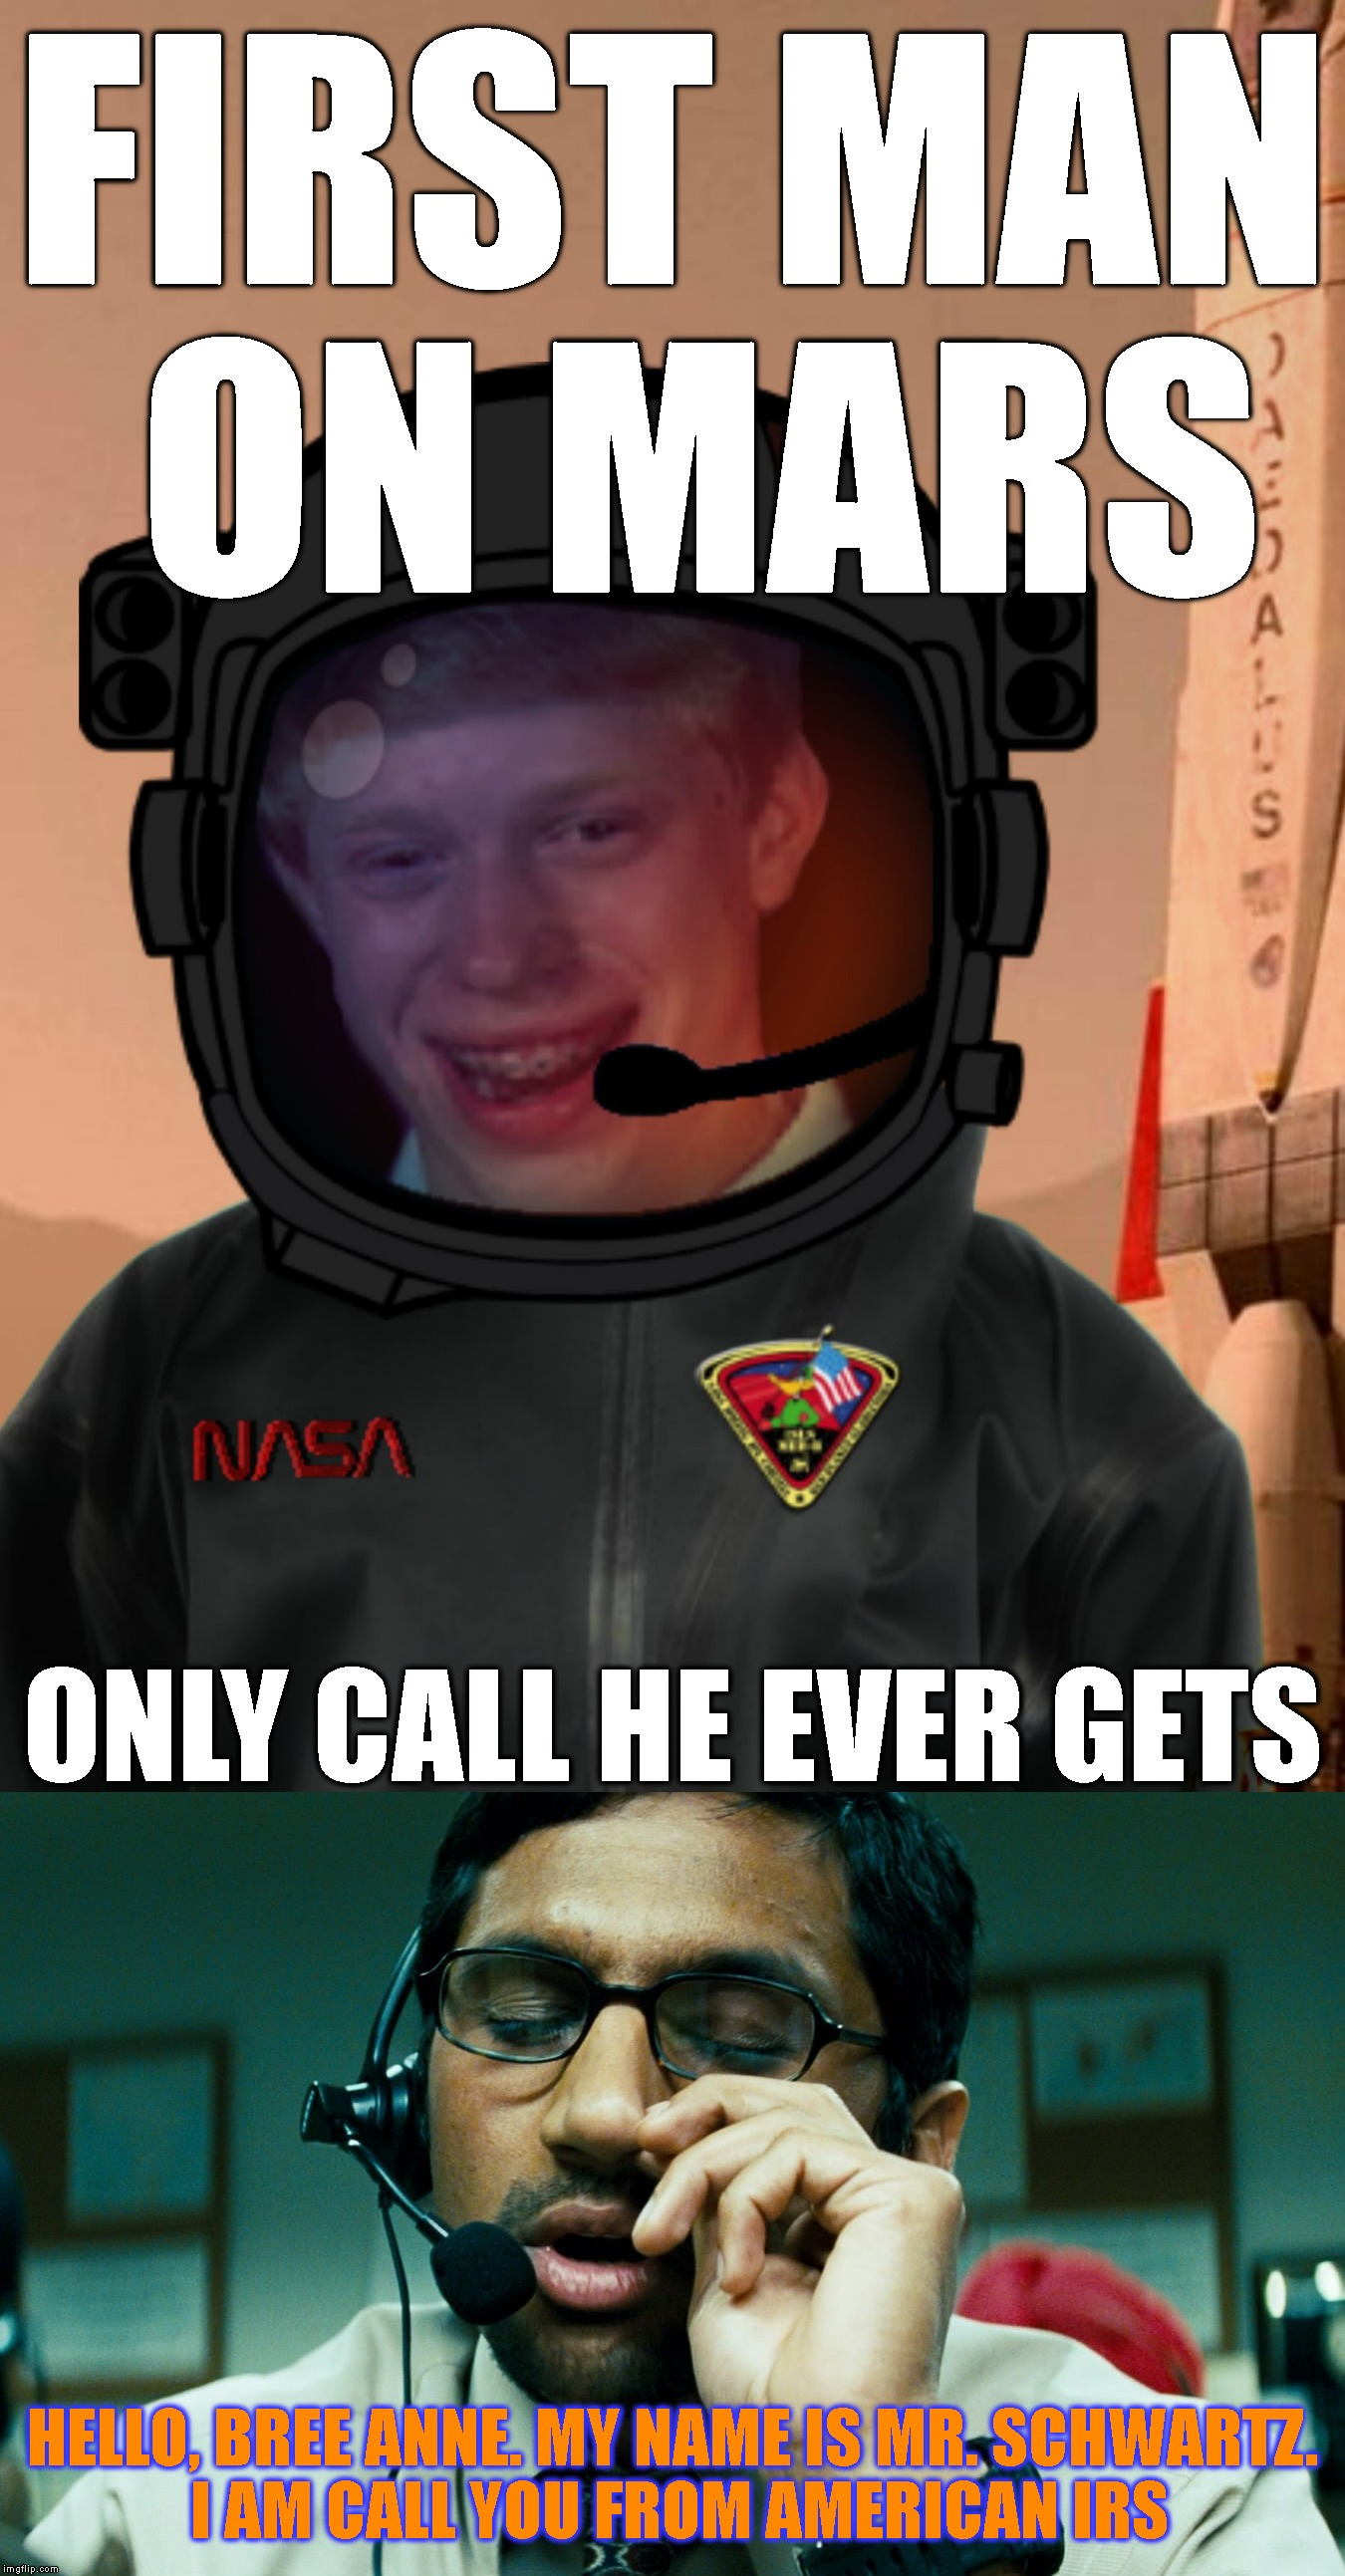 Interplanetary Phone Scam | FIRST MAN ON MARS HELLO, BREE ANNE. MY NAME IS MR. SCHWARTZ. I AM CALL YOU FROM AMERICAN IRS ONLY CALL HE EVER GETS | image tagged in bad luck brian spaceman,bad luck brian,mars,nasa,scammers,telemarketer | made w/ Imgflip meme maker